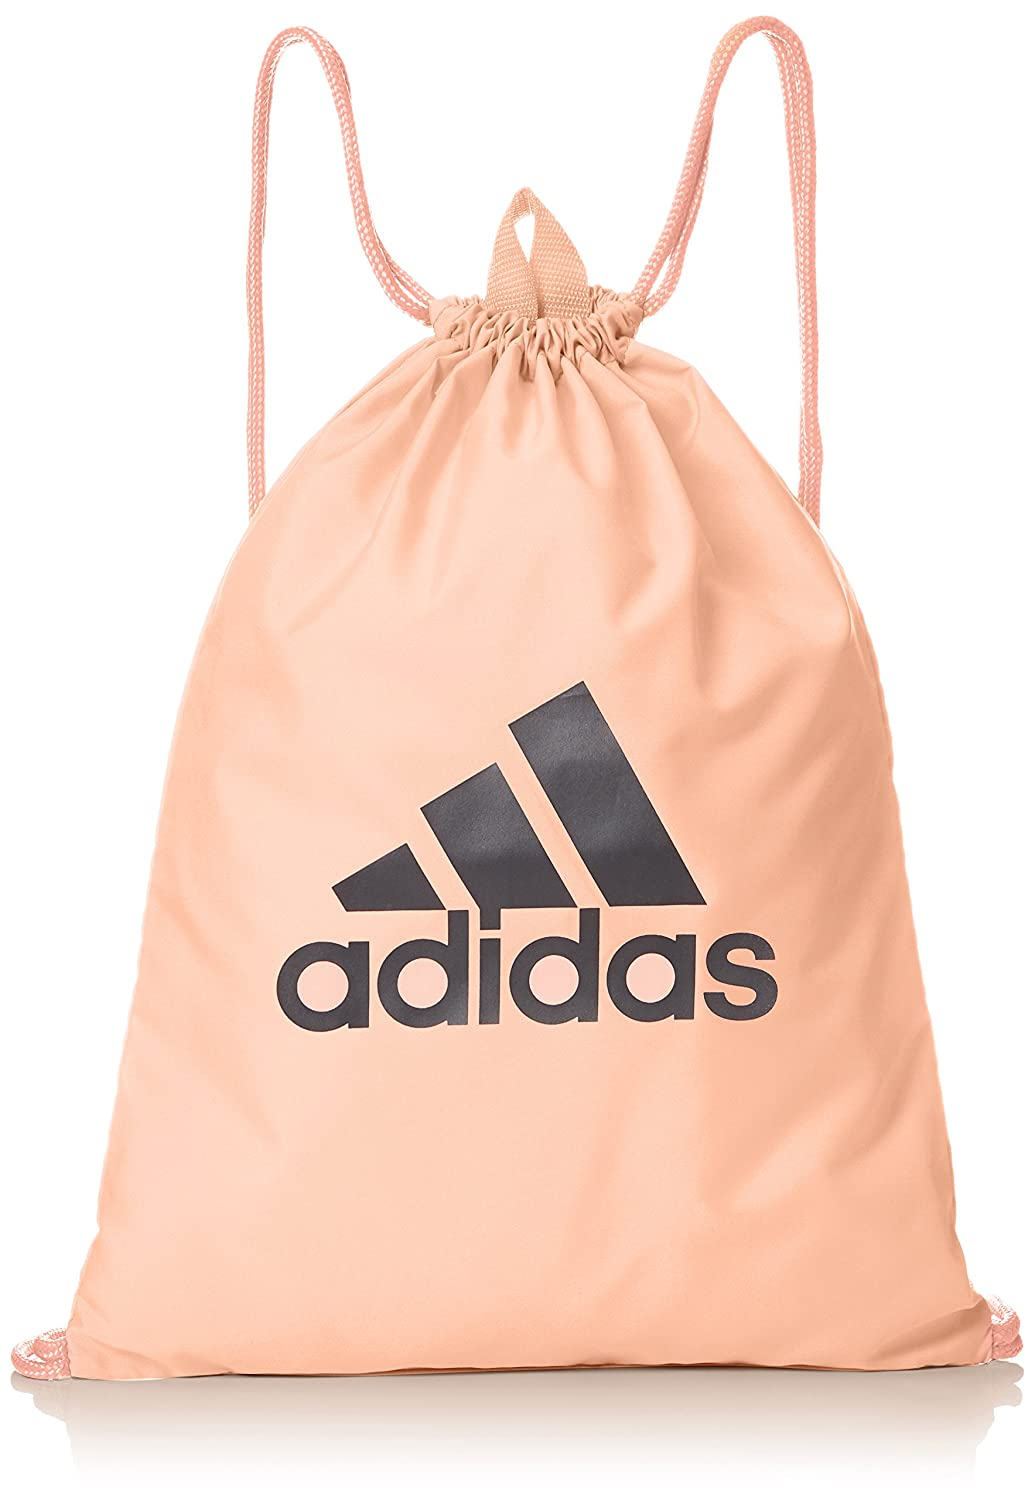 adidas Performance Logo Gym Bag  Amazon.co.uk  Sports   Outdoors cf2d59c095730